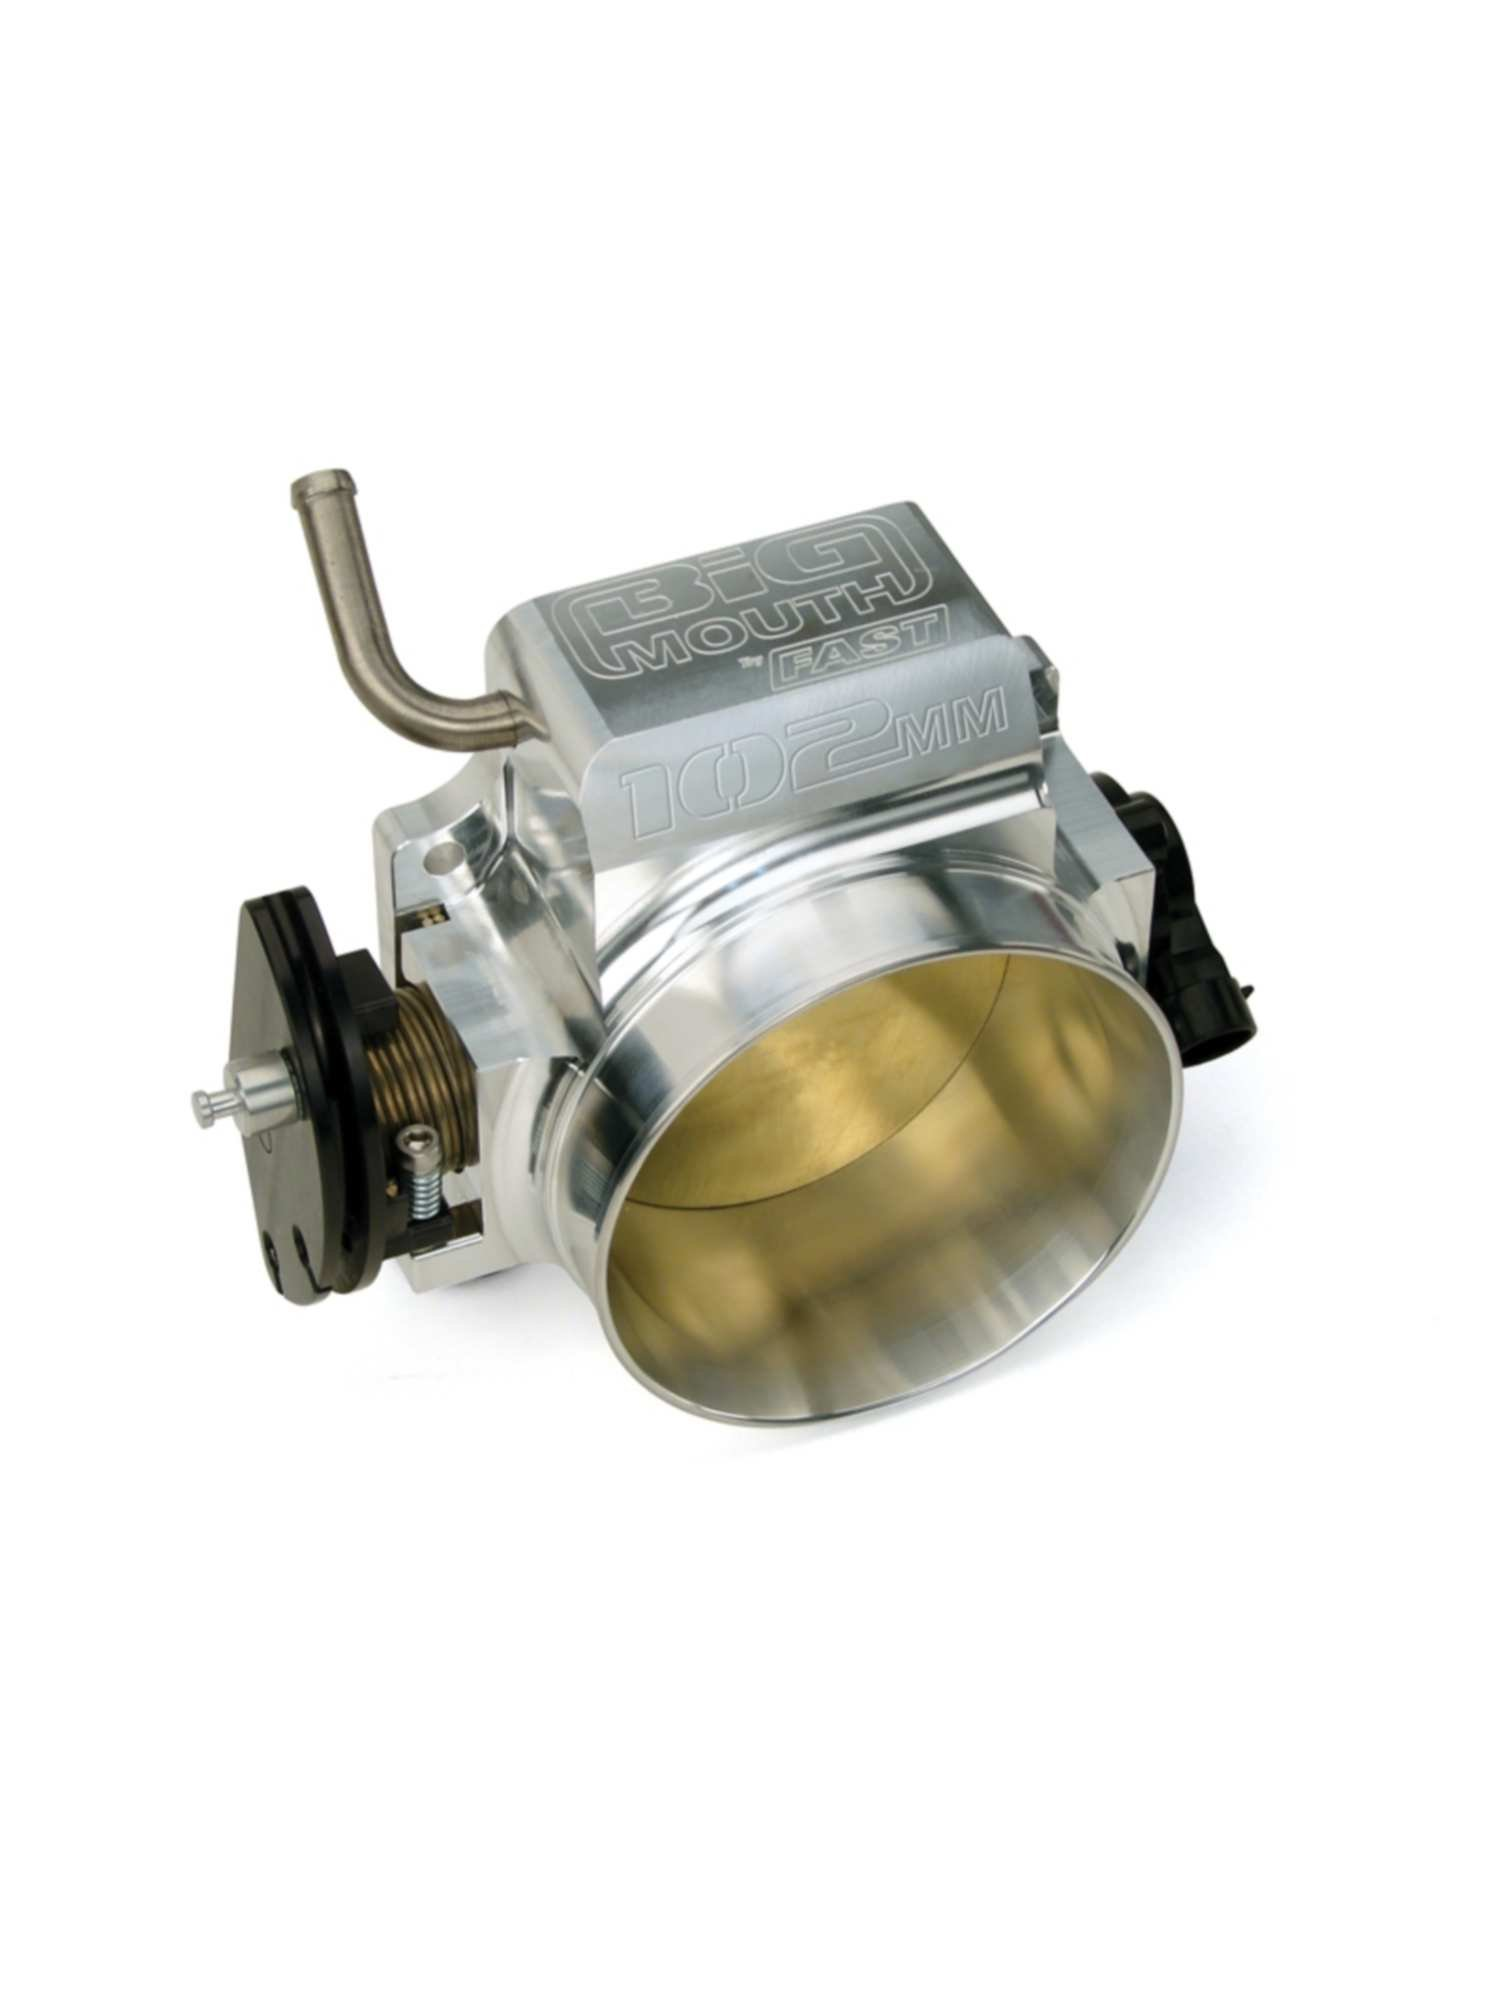 Fast 54103 102mm Big Mouth Throttle Body with TPS for LS Applications by FAST (Image #1)